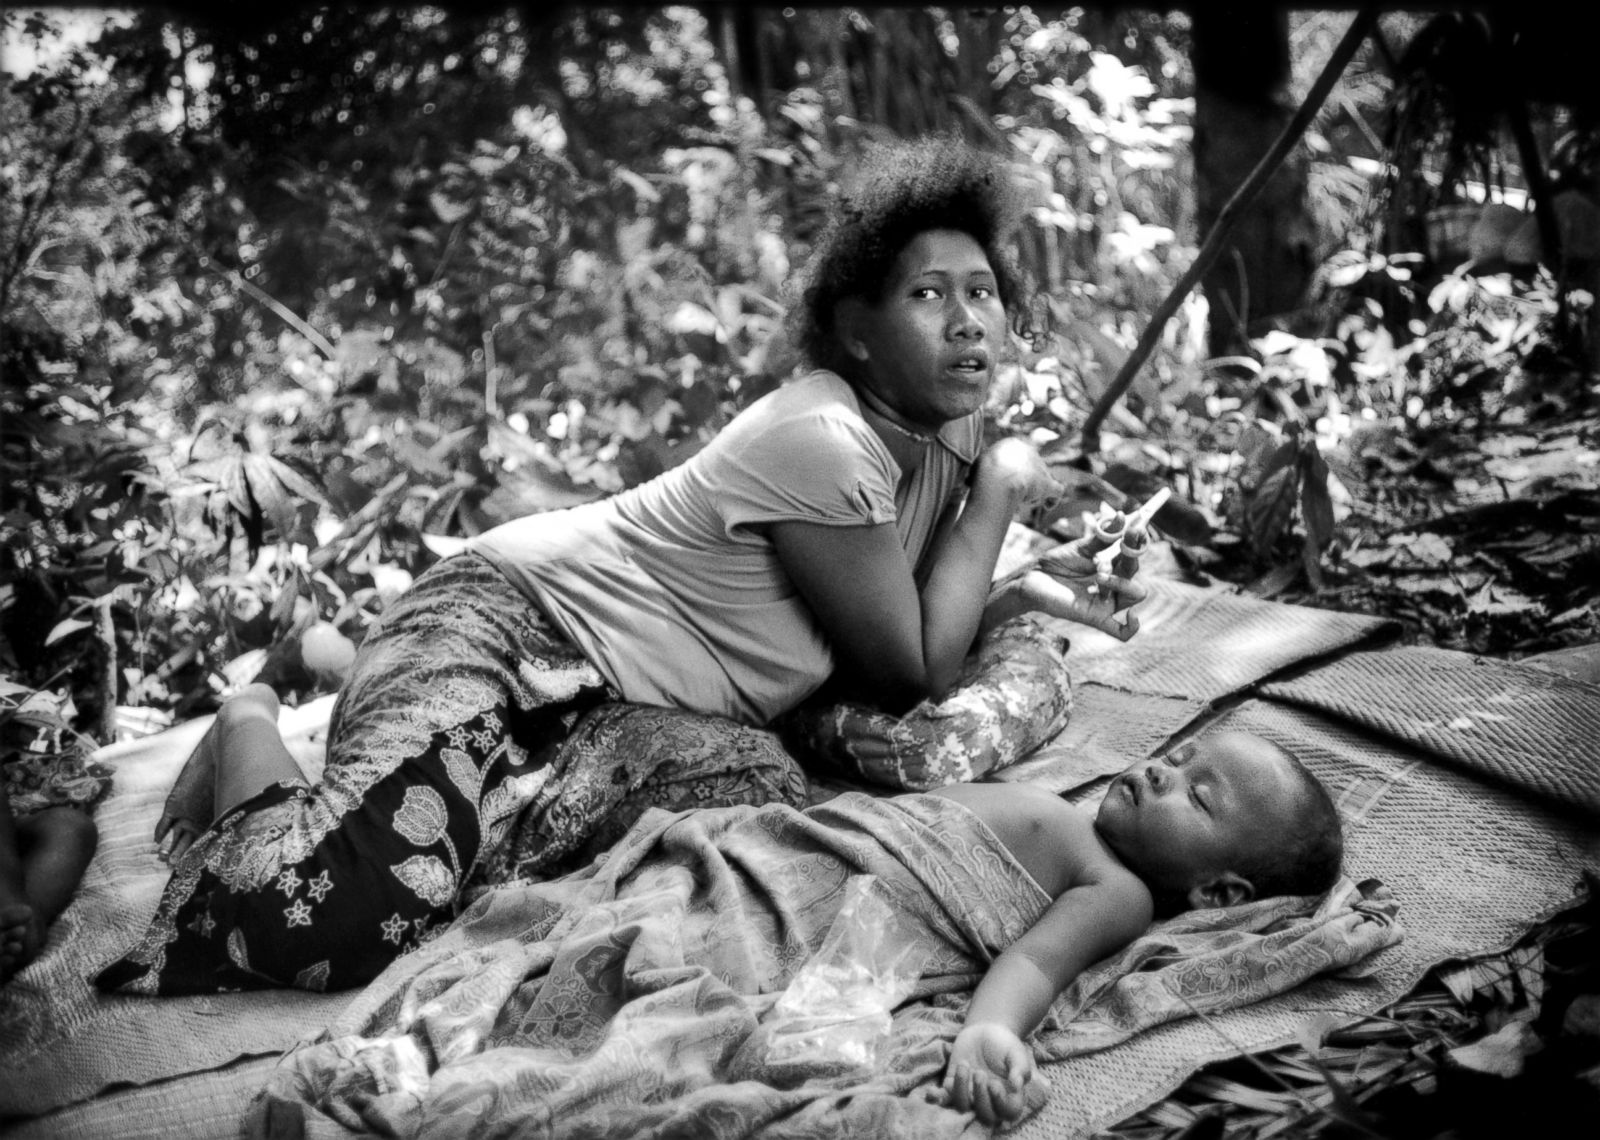 Batek People: An Endangered Tribe Faces The Loss Of Their Last Parcel Of